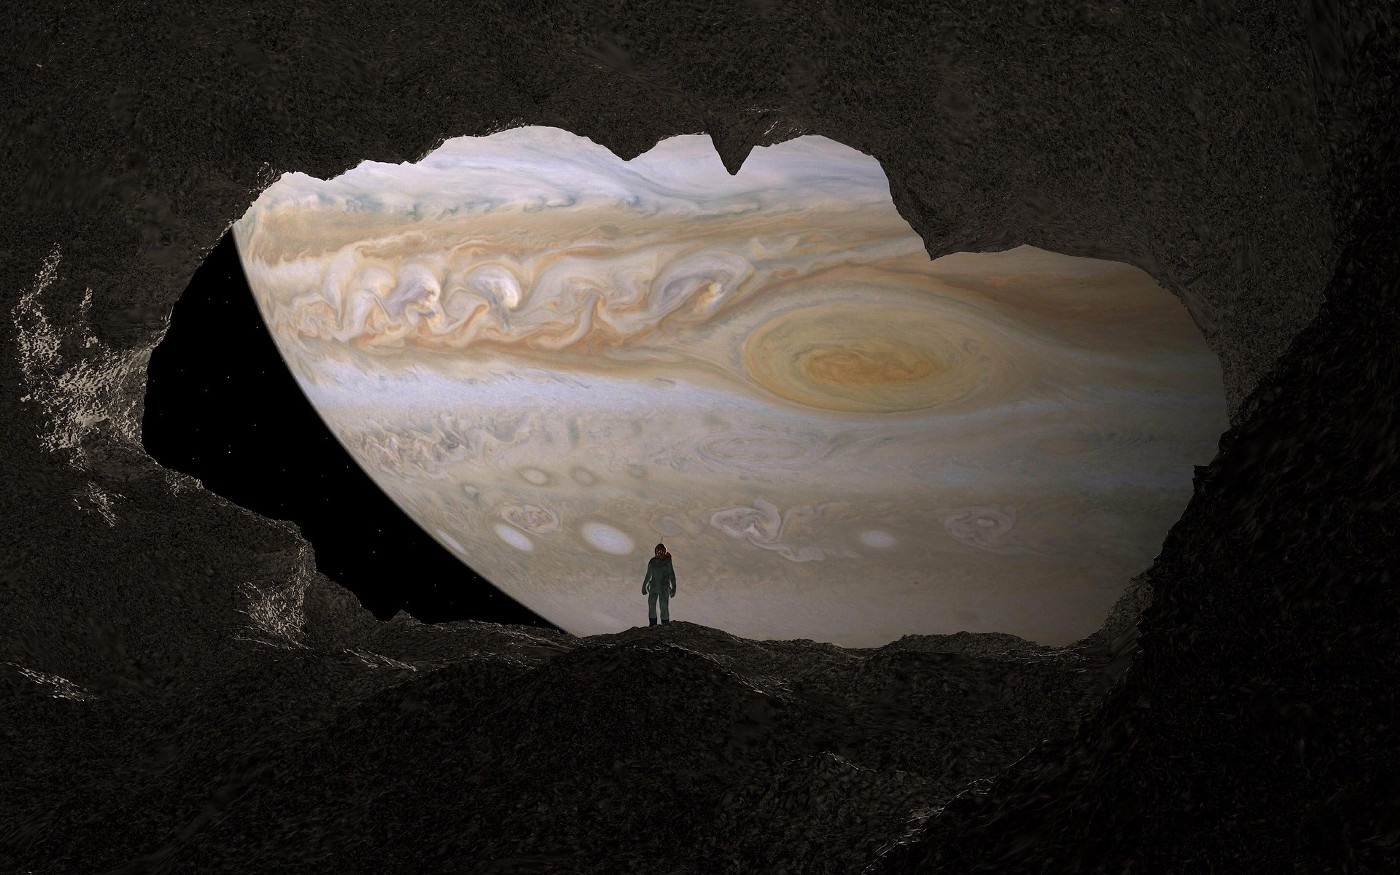 A human standing in front of Jupiter